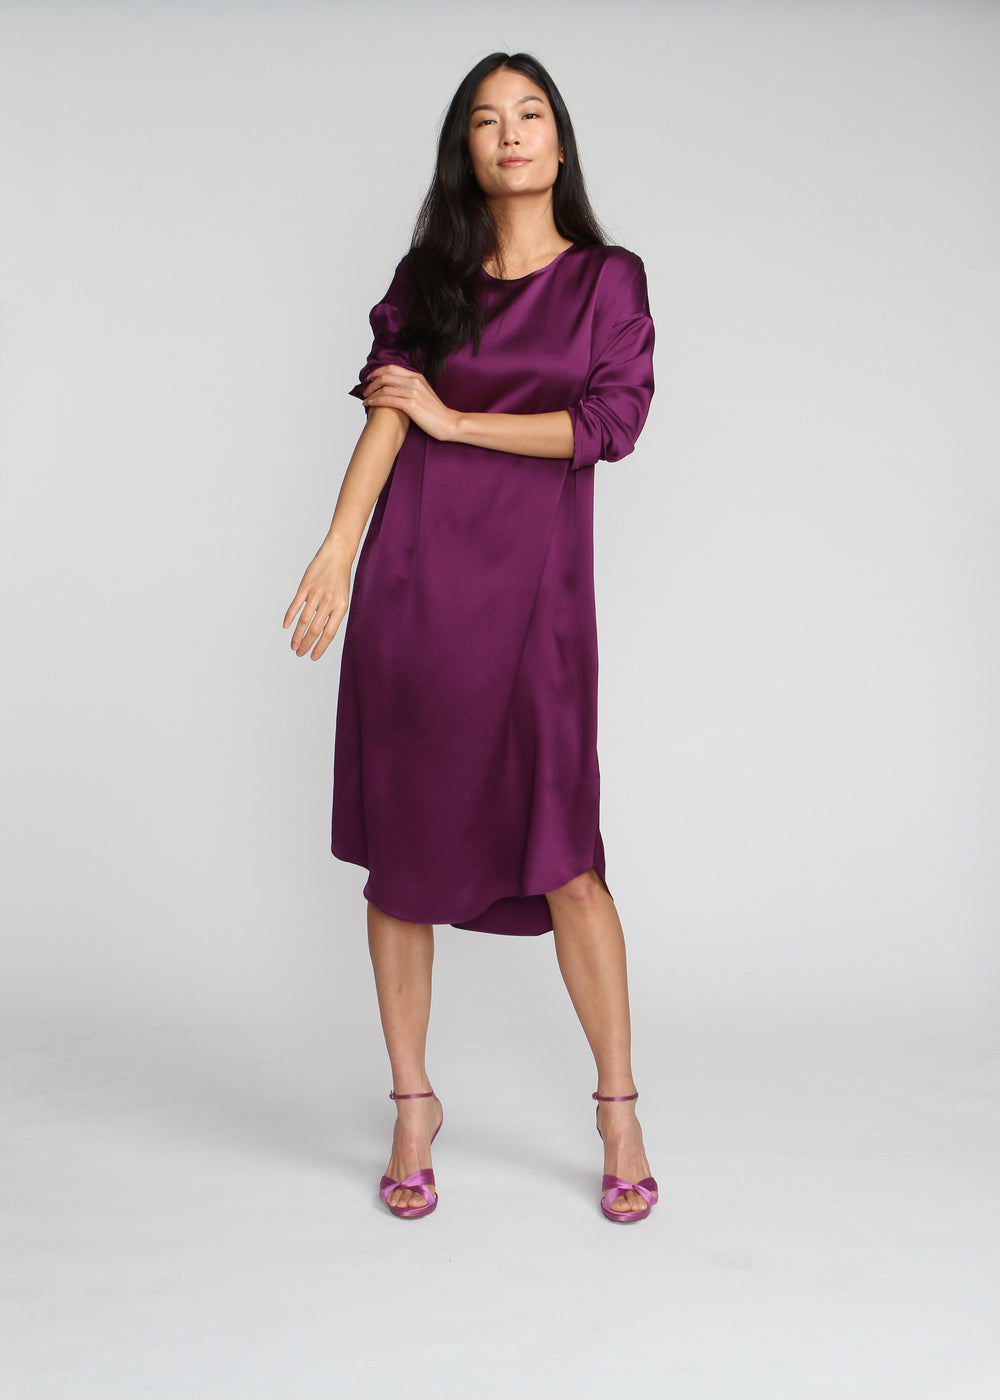 Silky T Dress - Prada Purple - The Frock NYC